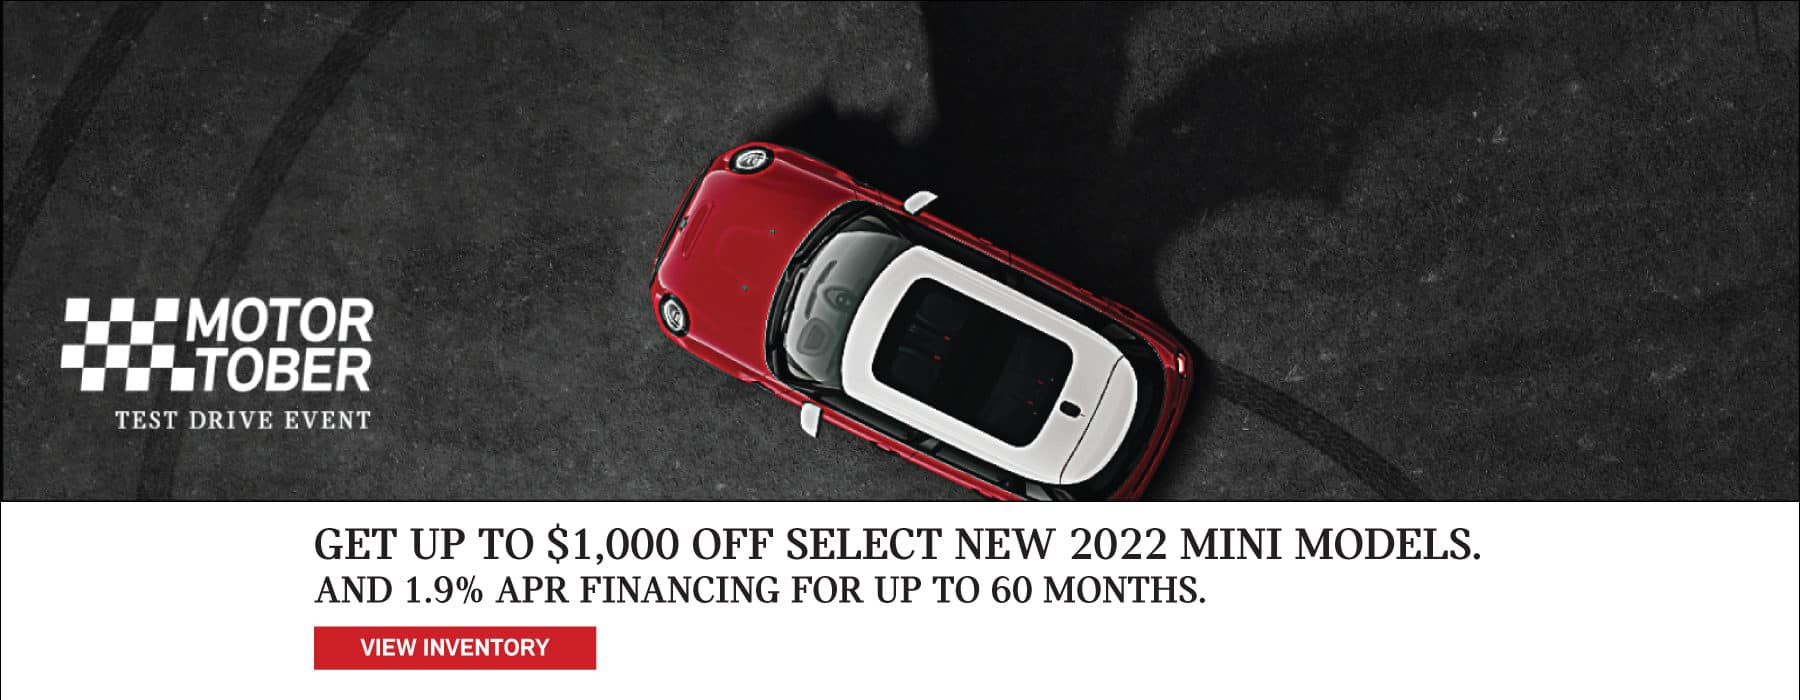 IT'S MOTOR-TOBER! GET UP TO $1,000 OFF SELECT NEW 2022 MINI MODELS, AND 1.9% APR FINANCING FOR UP TO 60 MONTHS.